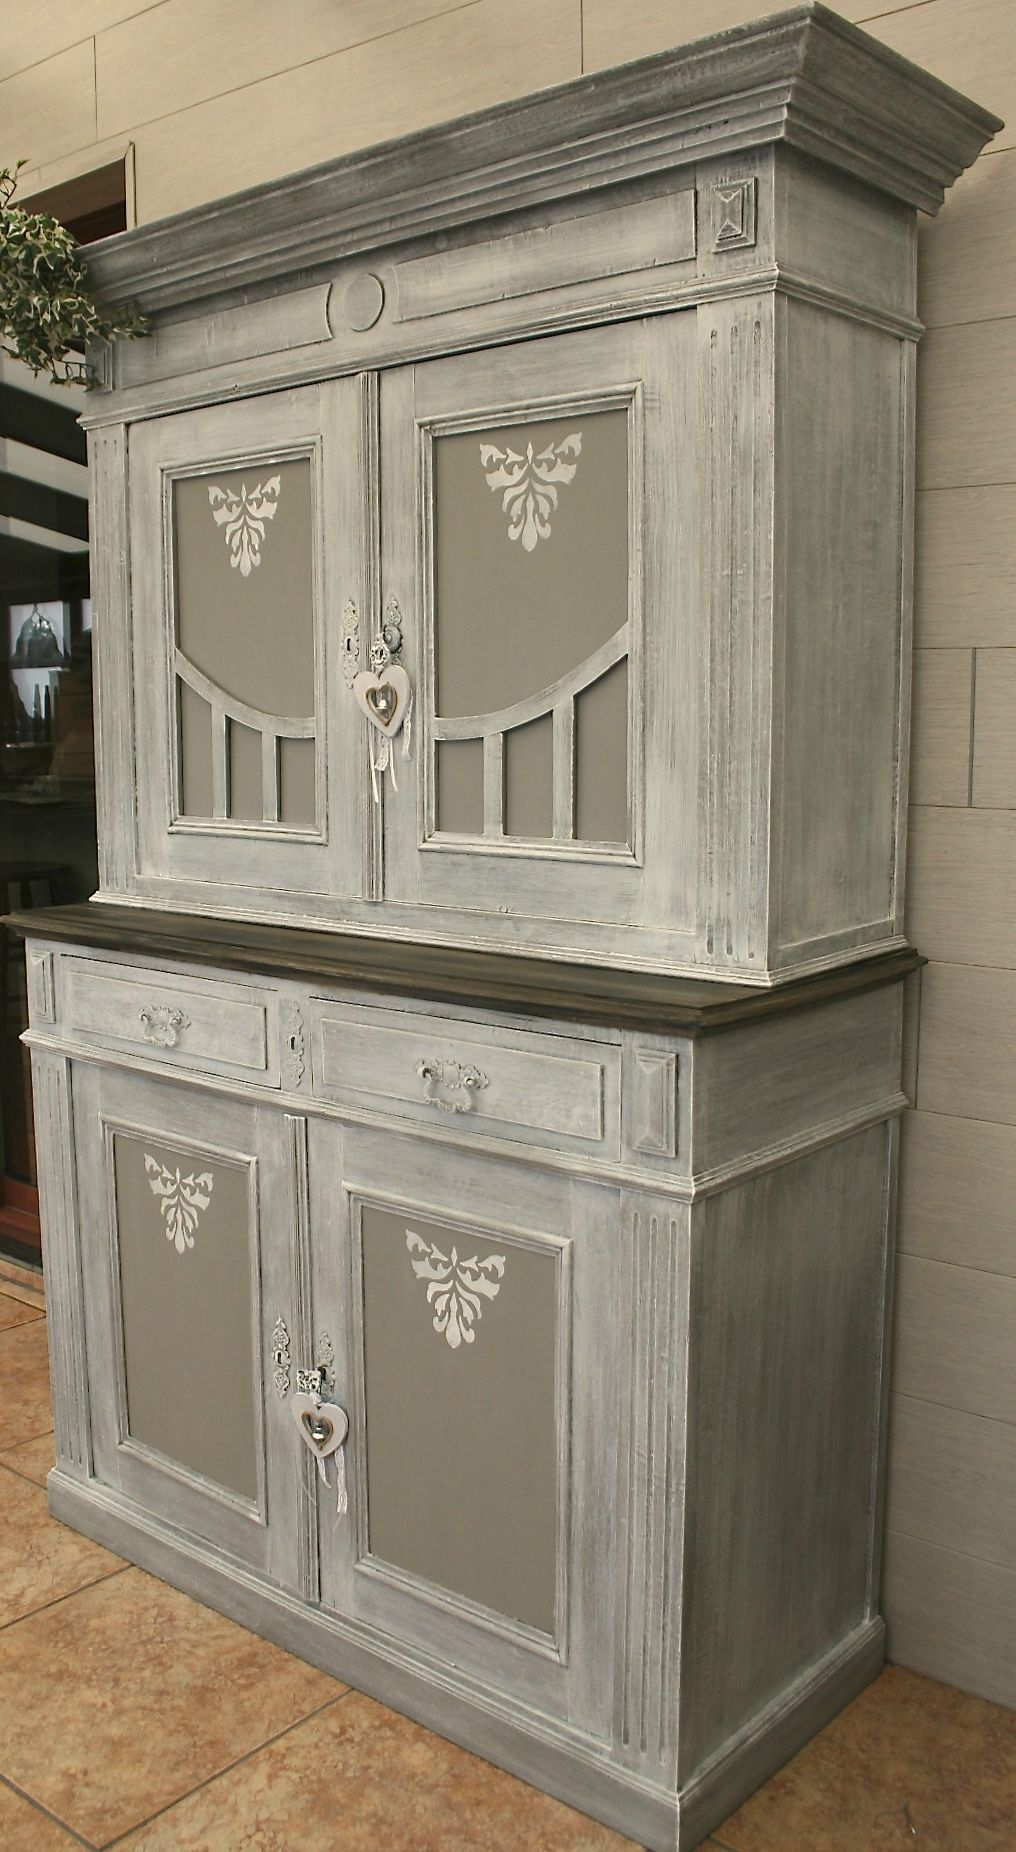 Meuble Robuste Ancien Double Corps Patine Mobilier De Salon Relooking Meuble Relooking Meuble Ancien